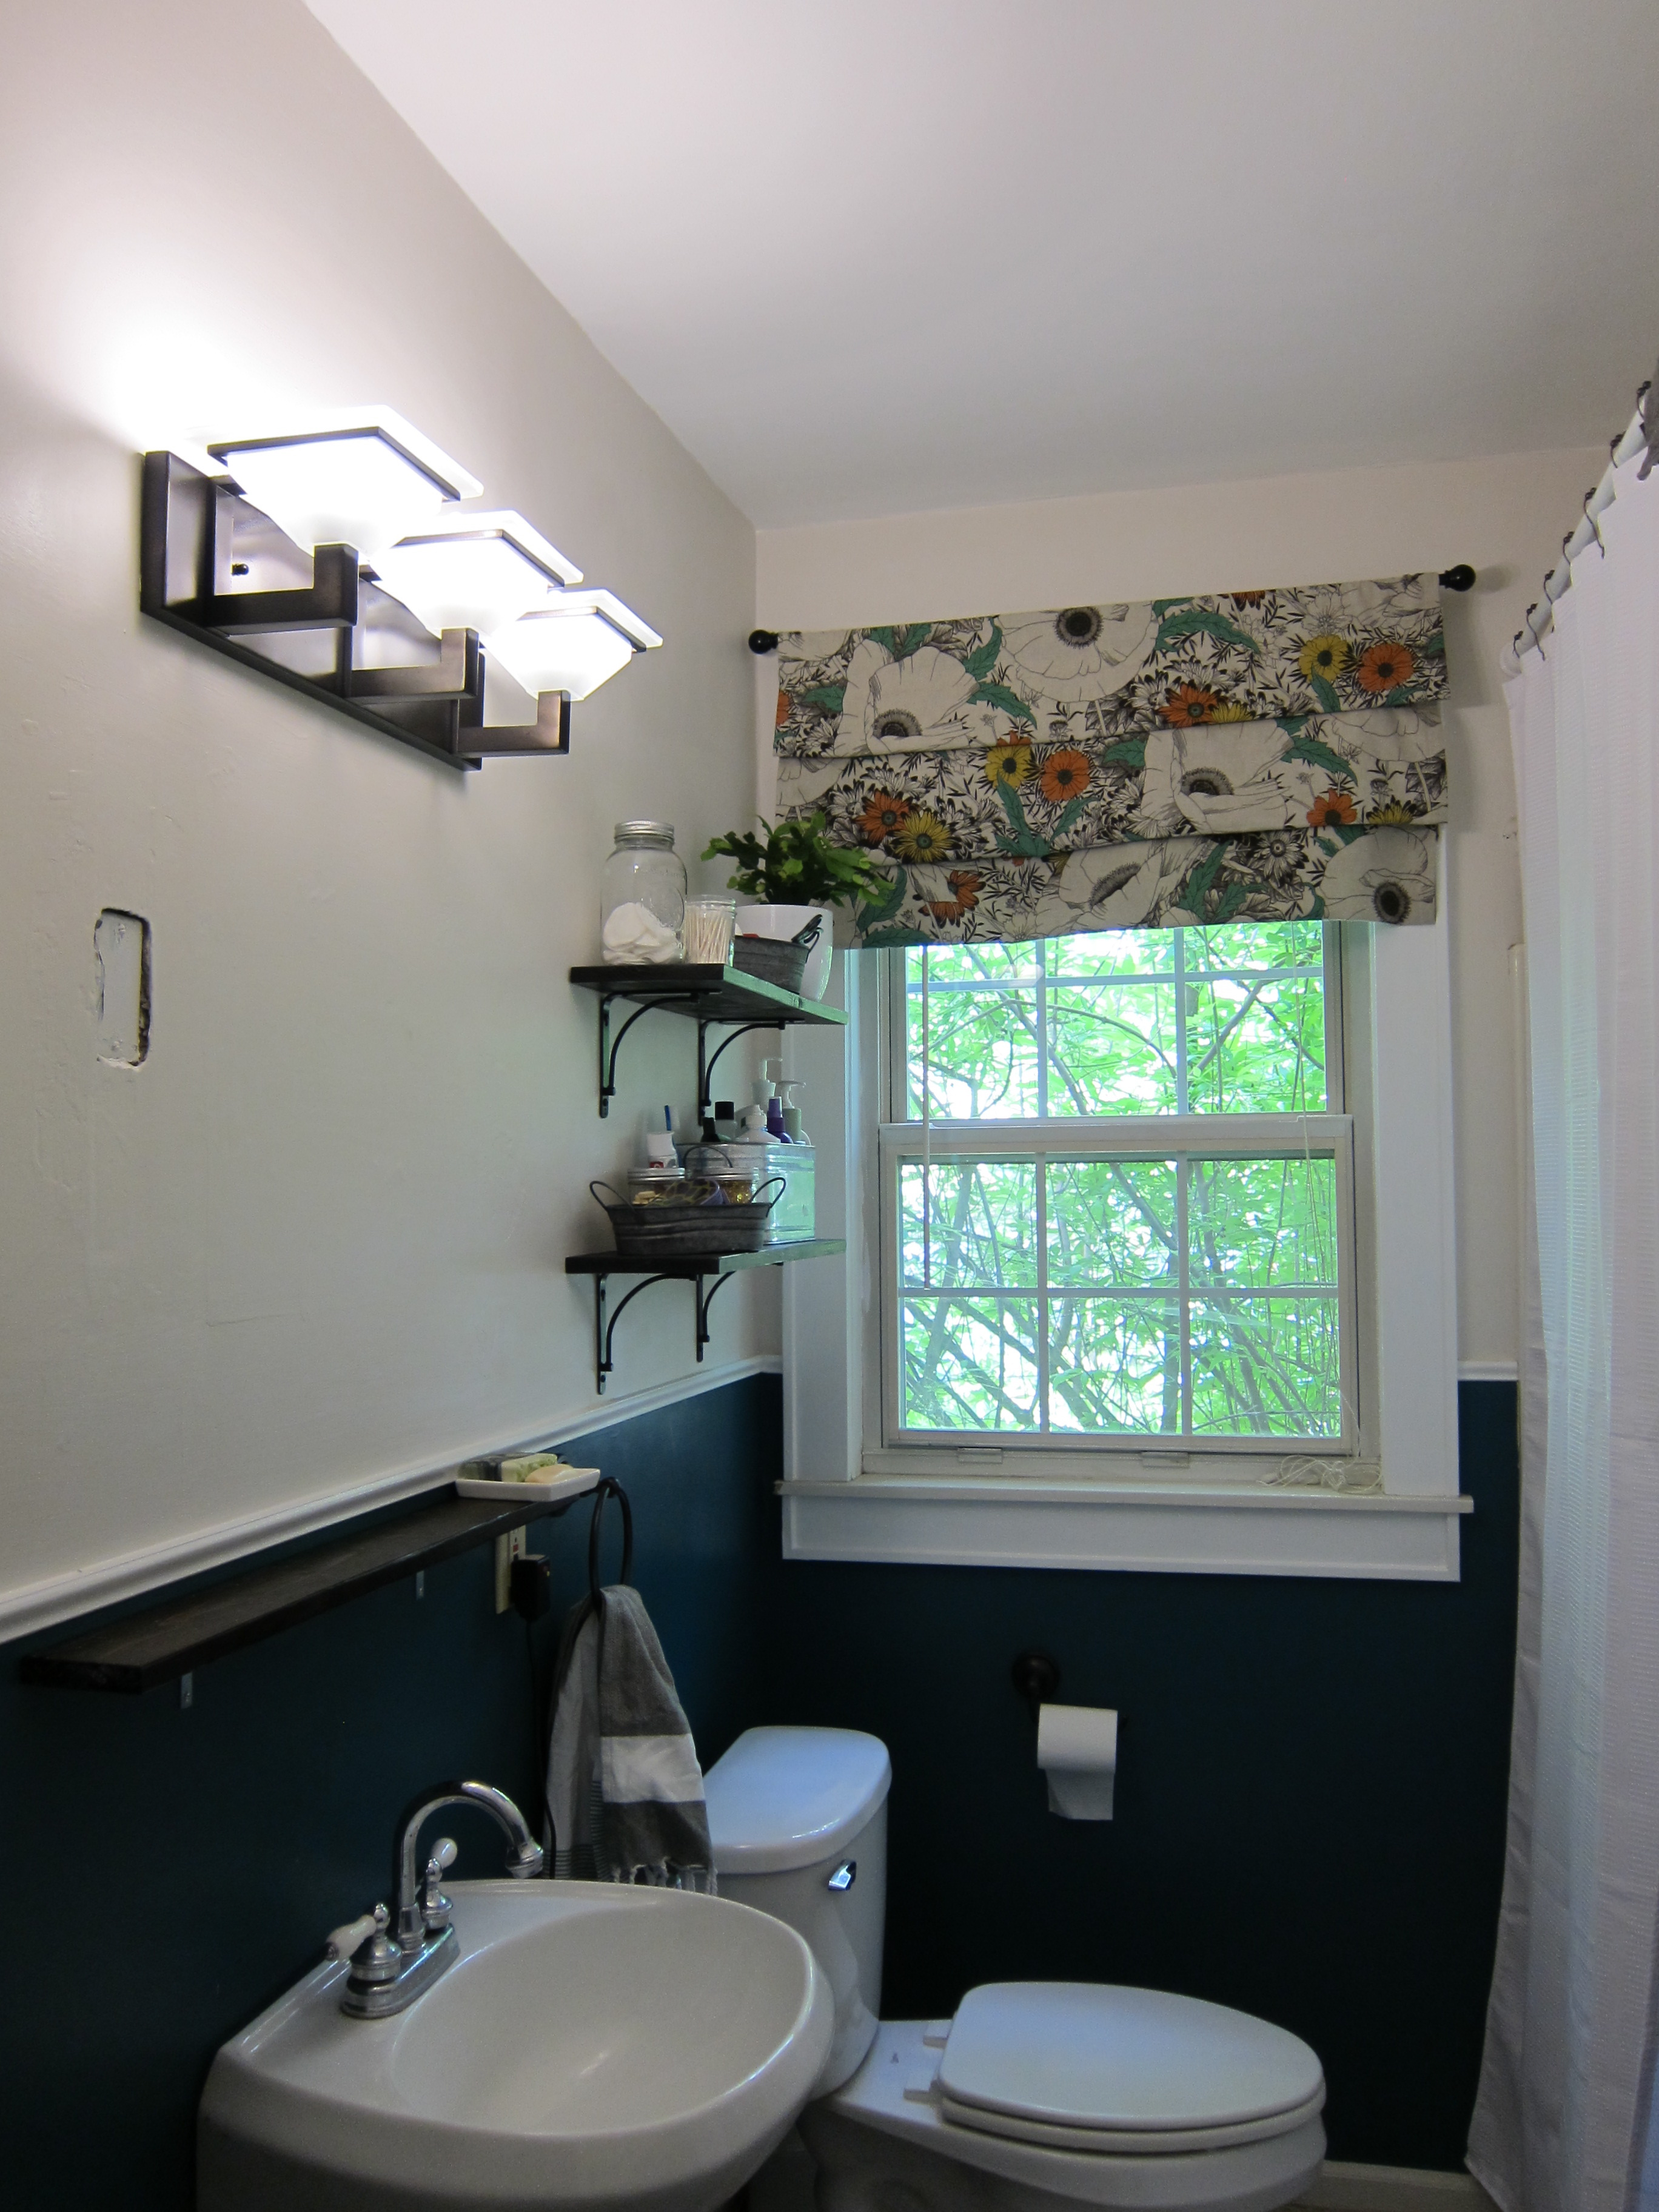 Spray Painted Bathroom Light Fixture Escape From Bk